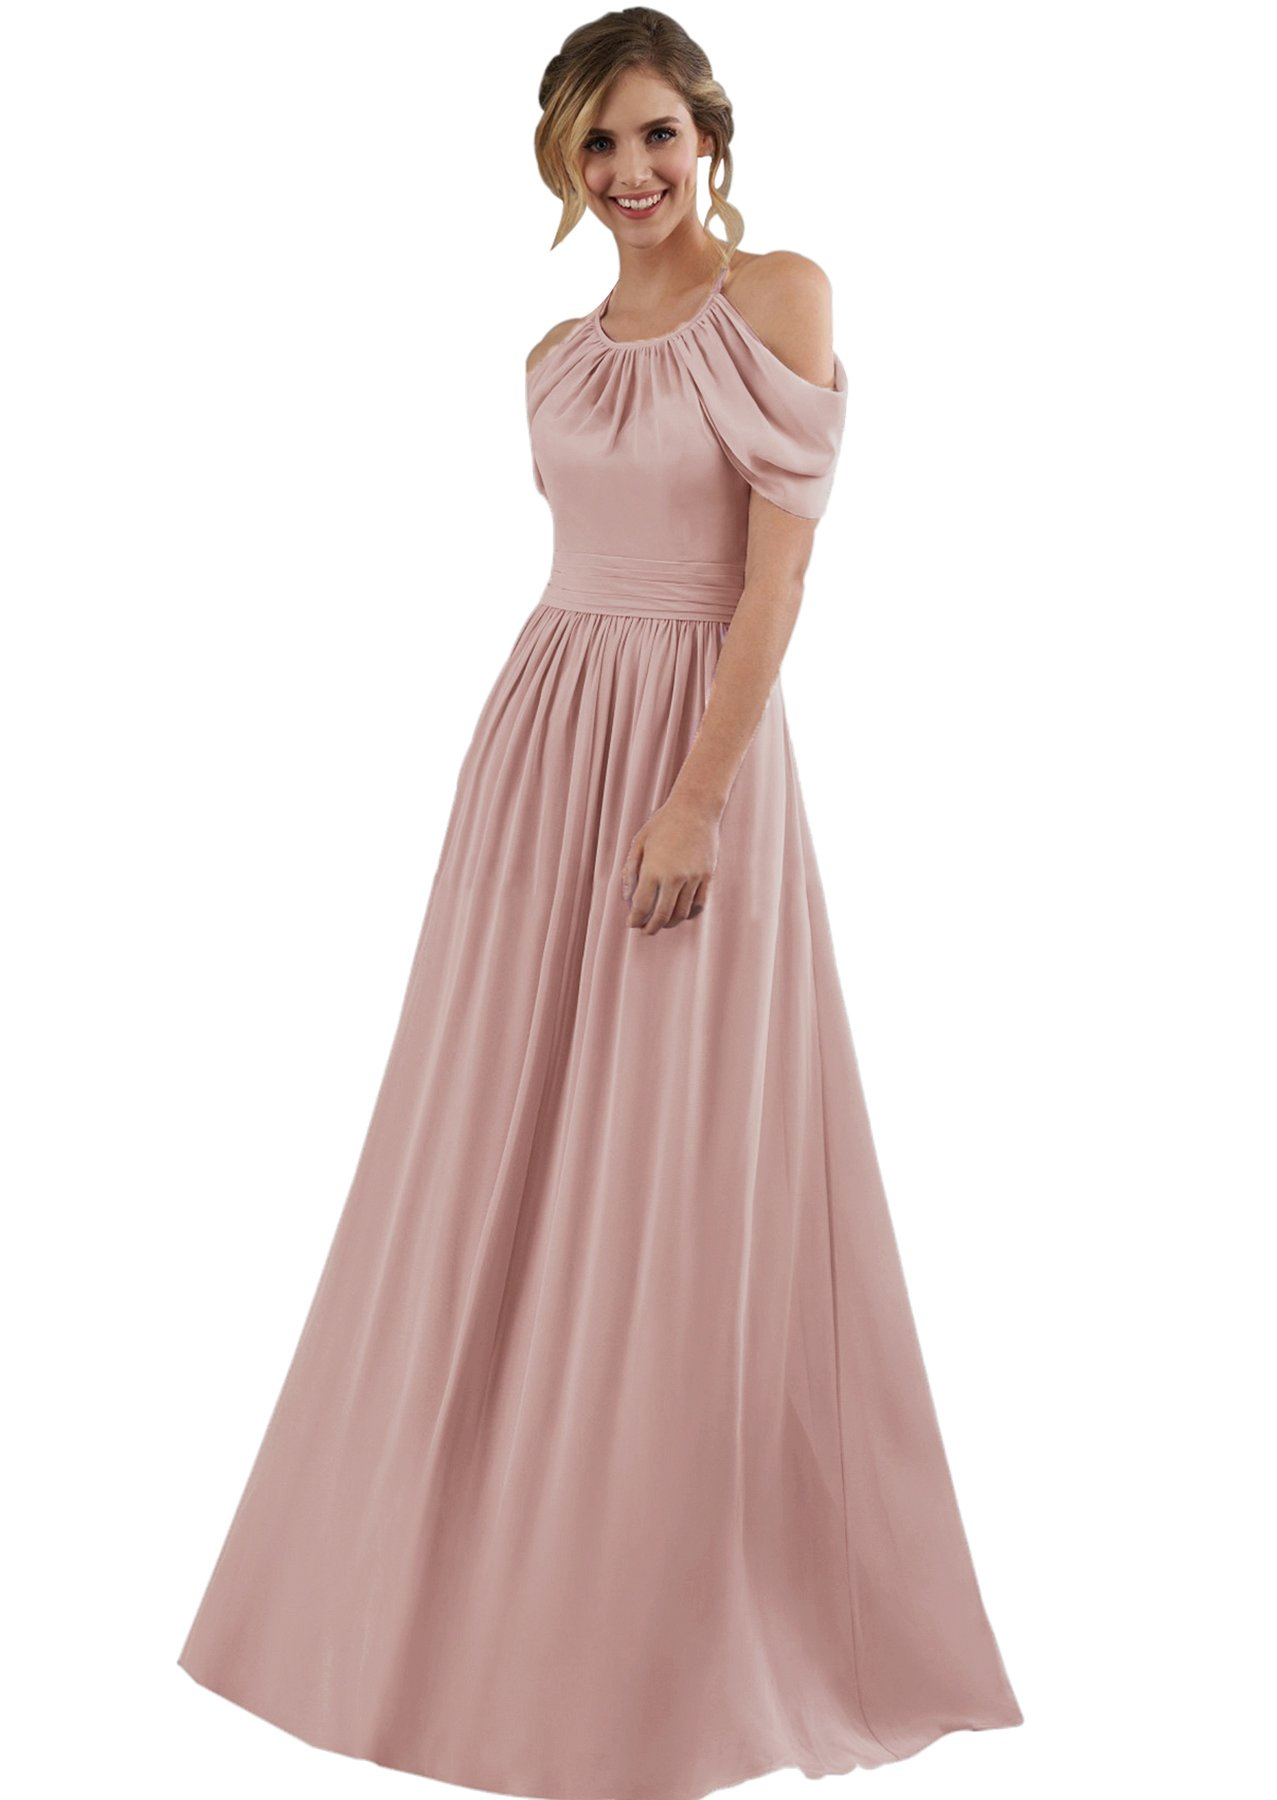 037c8a981090 Women's Halter Chiffon Long Formal Wedding Bridesmaid Dress Maxi with Cold  Shoulder Sleeves Dusty Rose Size 2